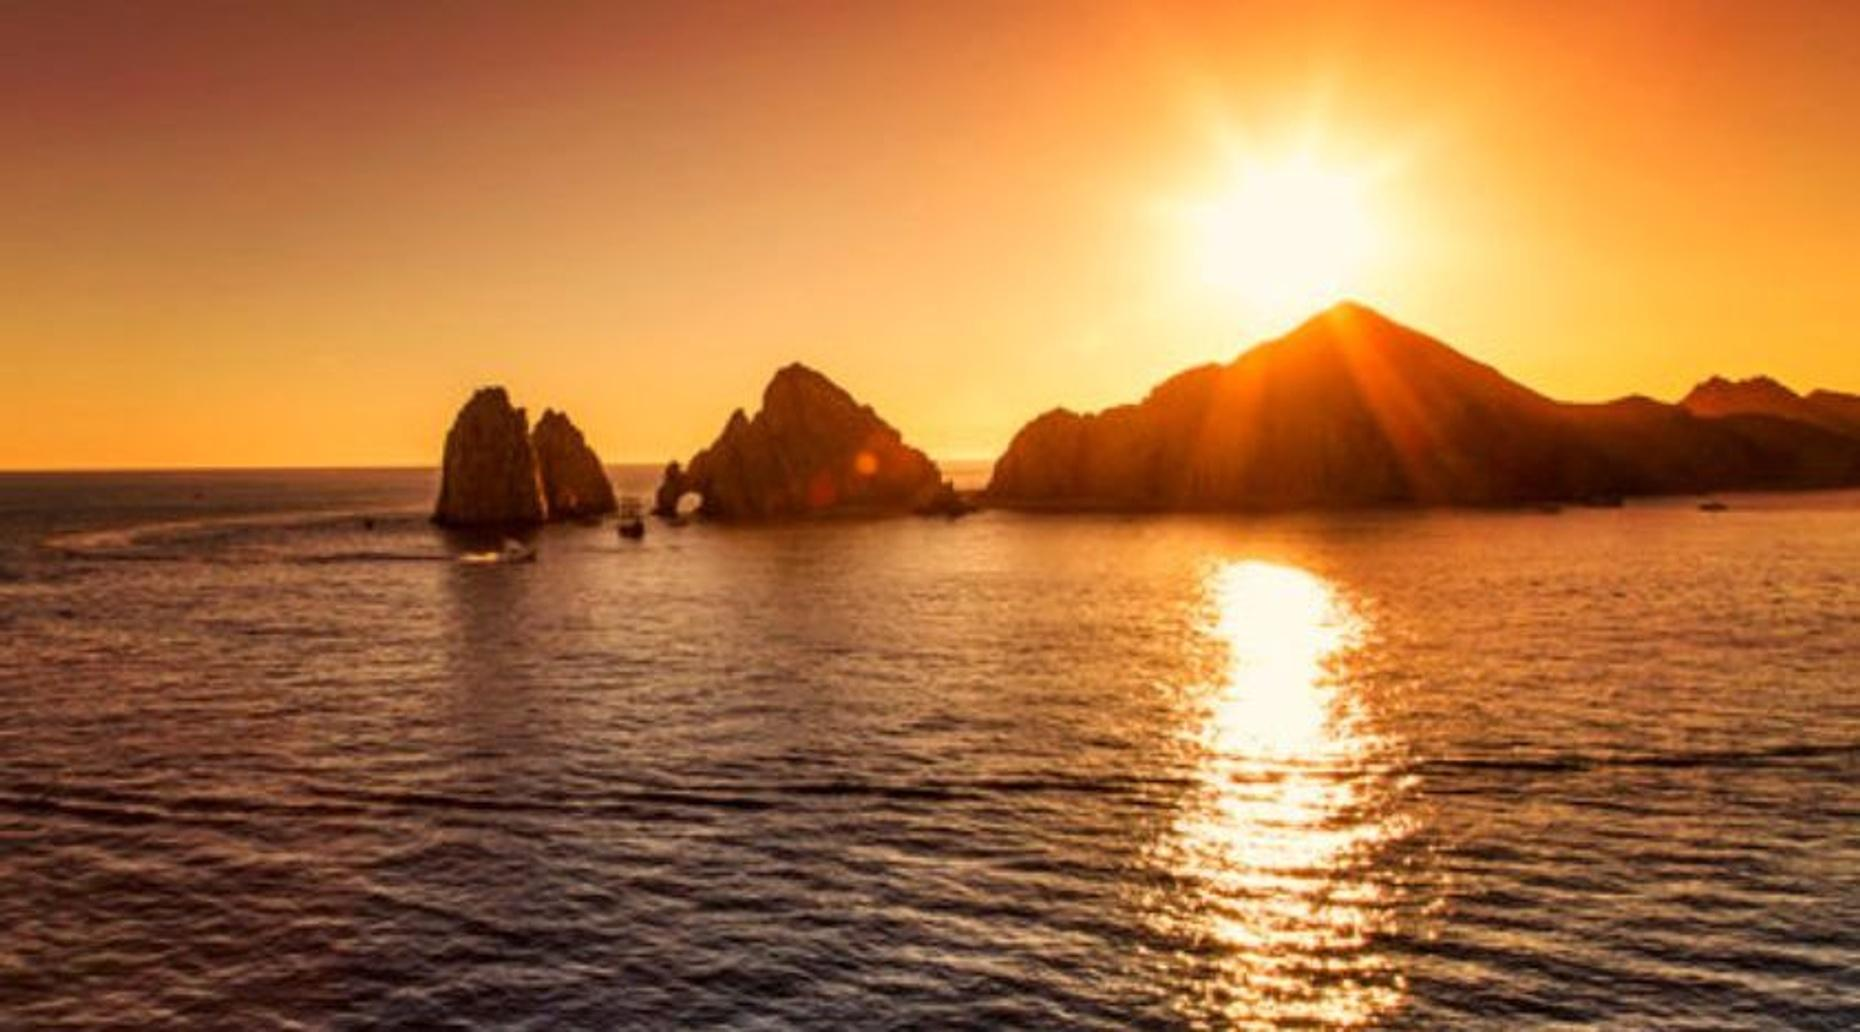 Private Sightseeing & Sunset Rides Boat Tour in Cabo San Lucas